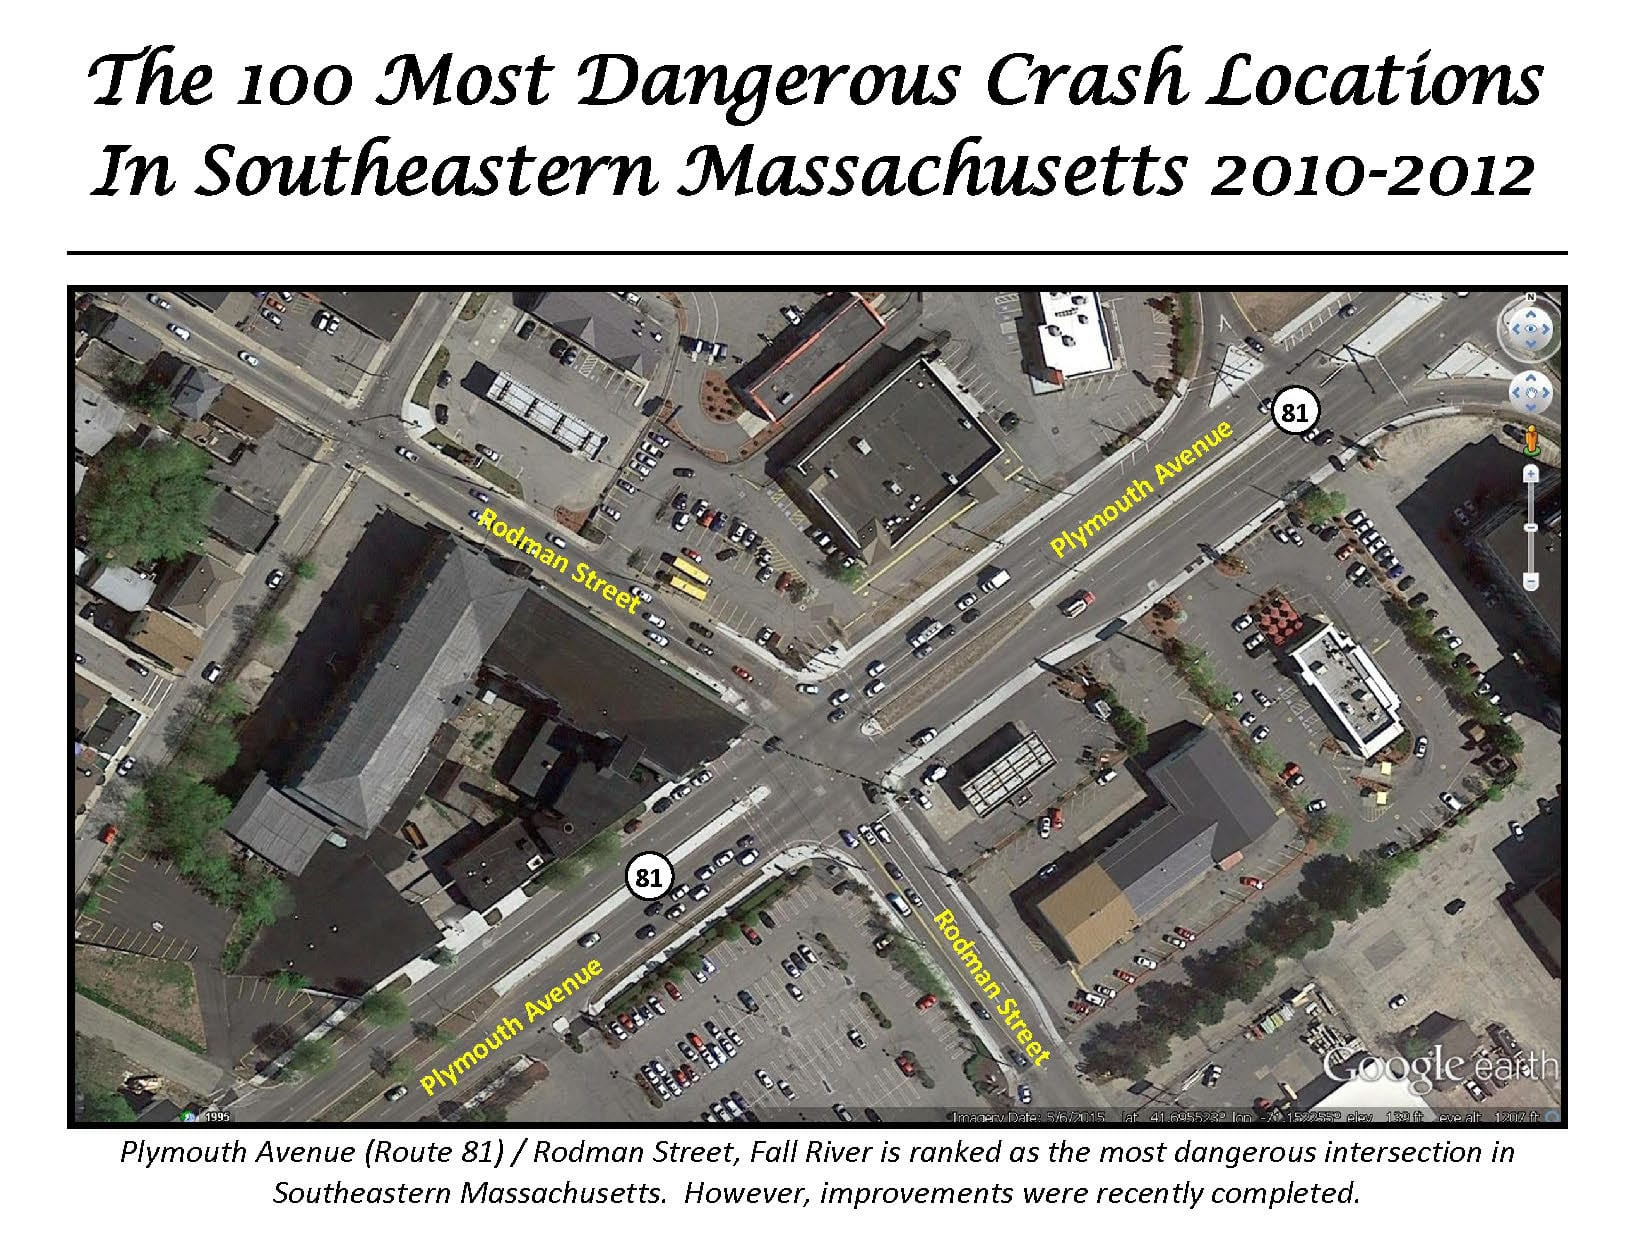 This is an image of the top 100 most dangerous intersections from 2010-2012